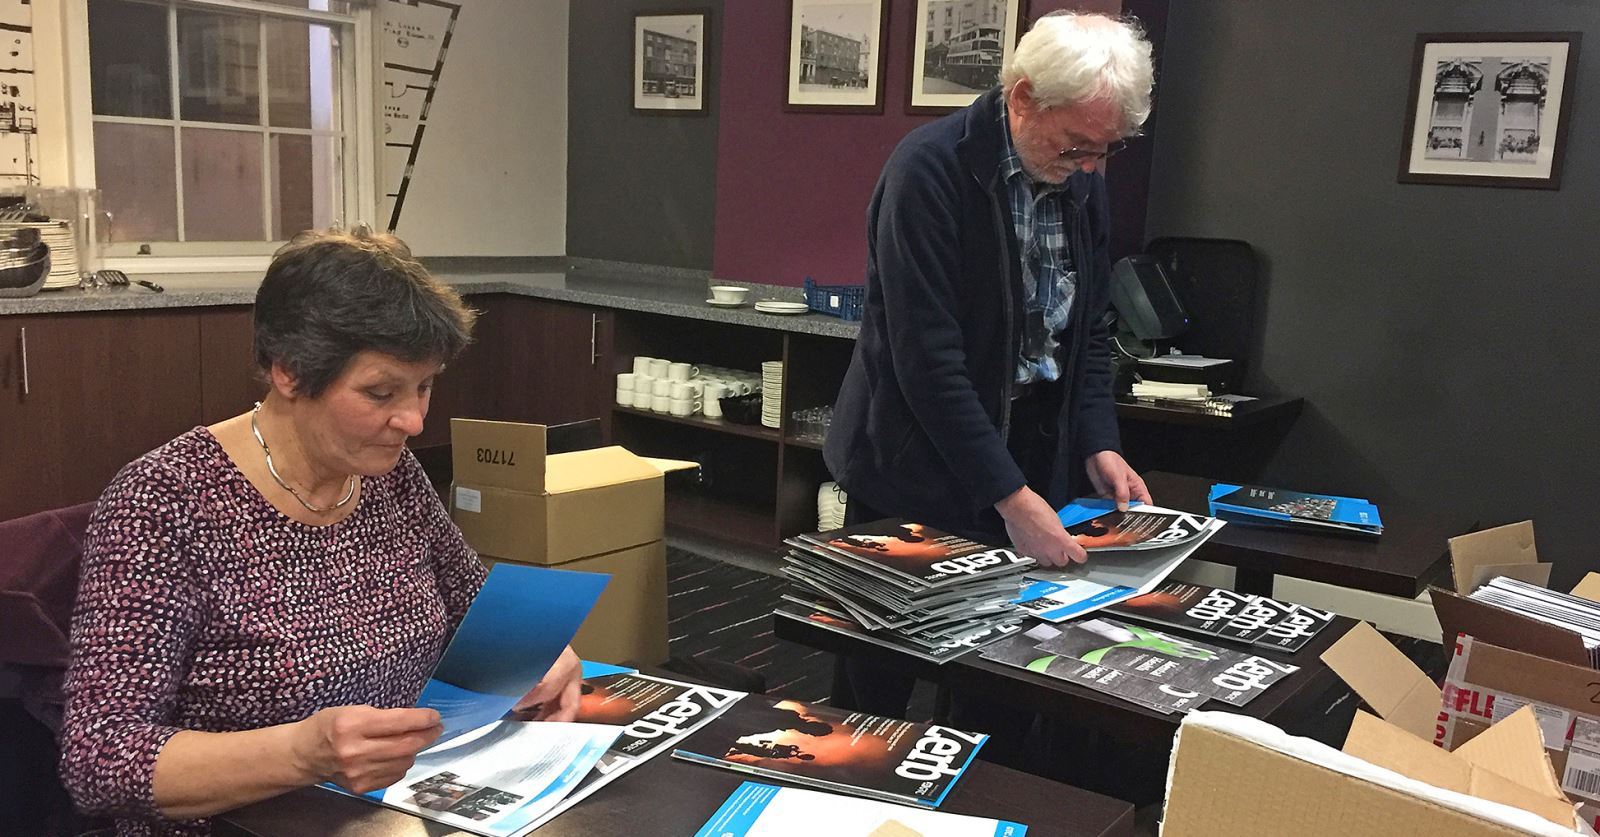 Helen Keep and John Tarby get GTC material ready for the International Short Film Show Awards in Nottingham